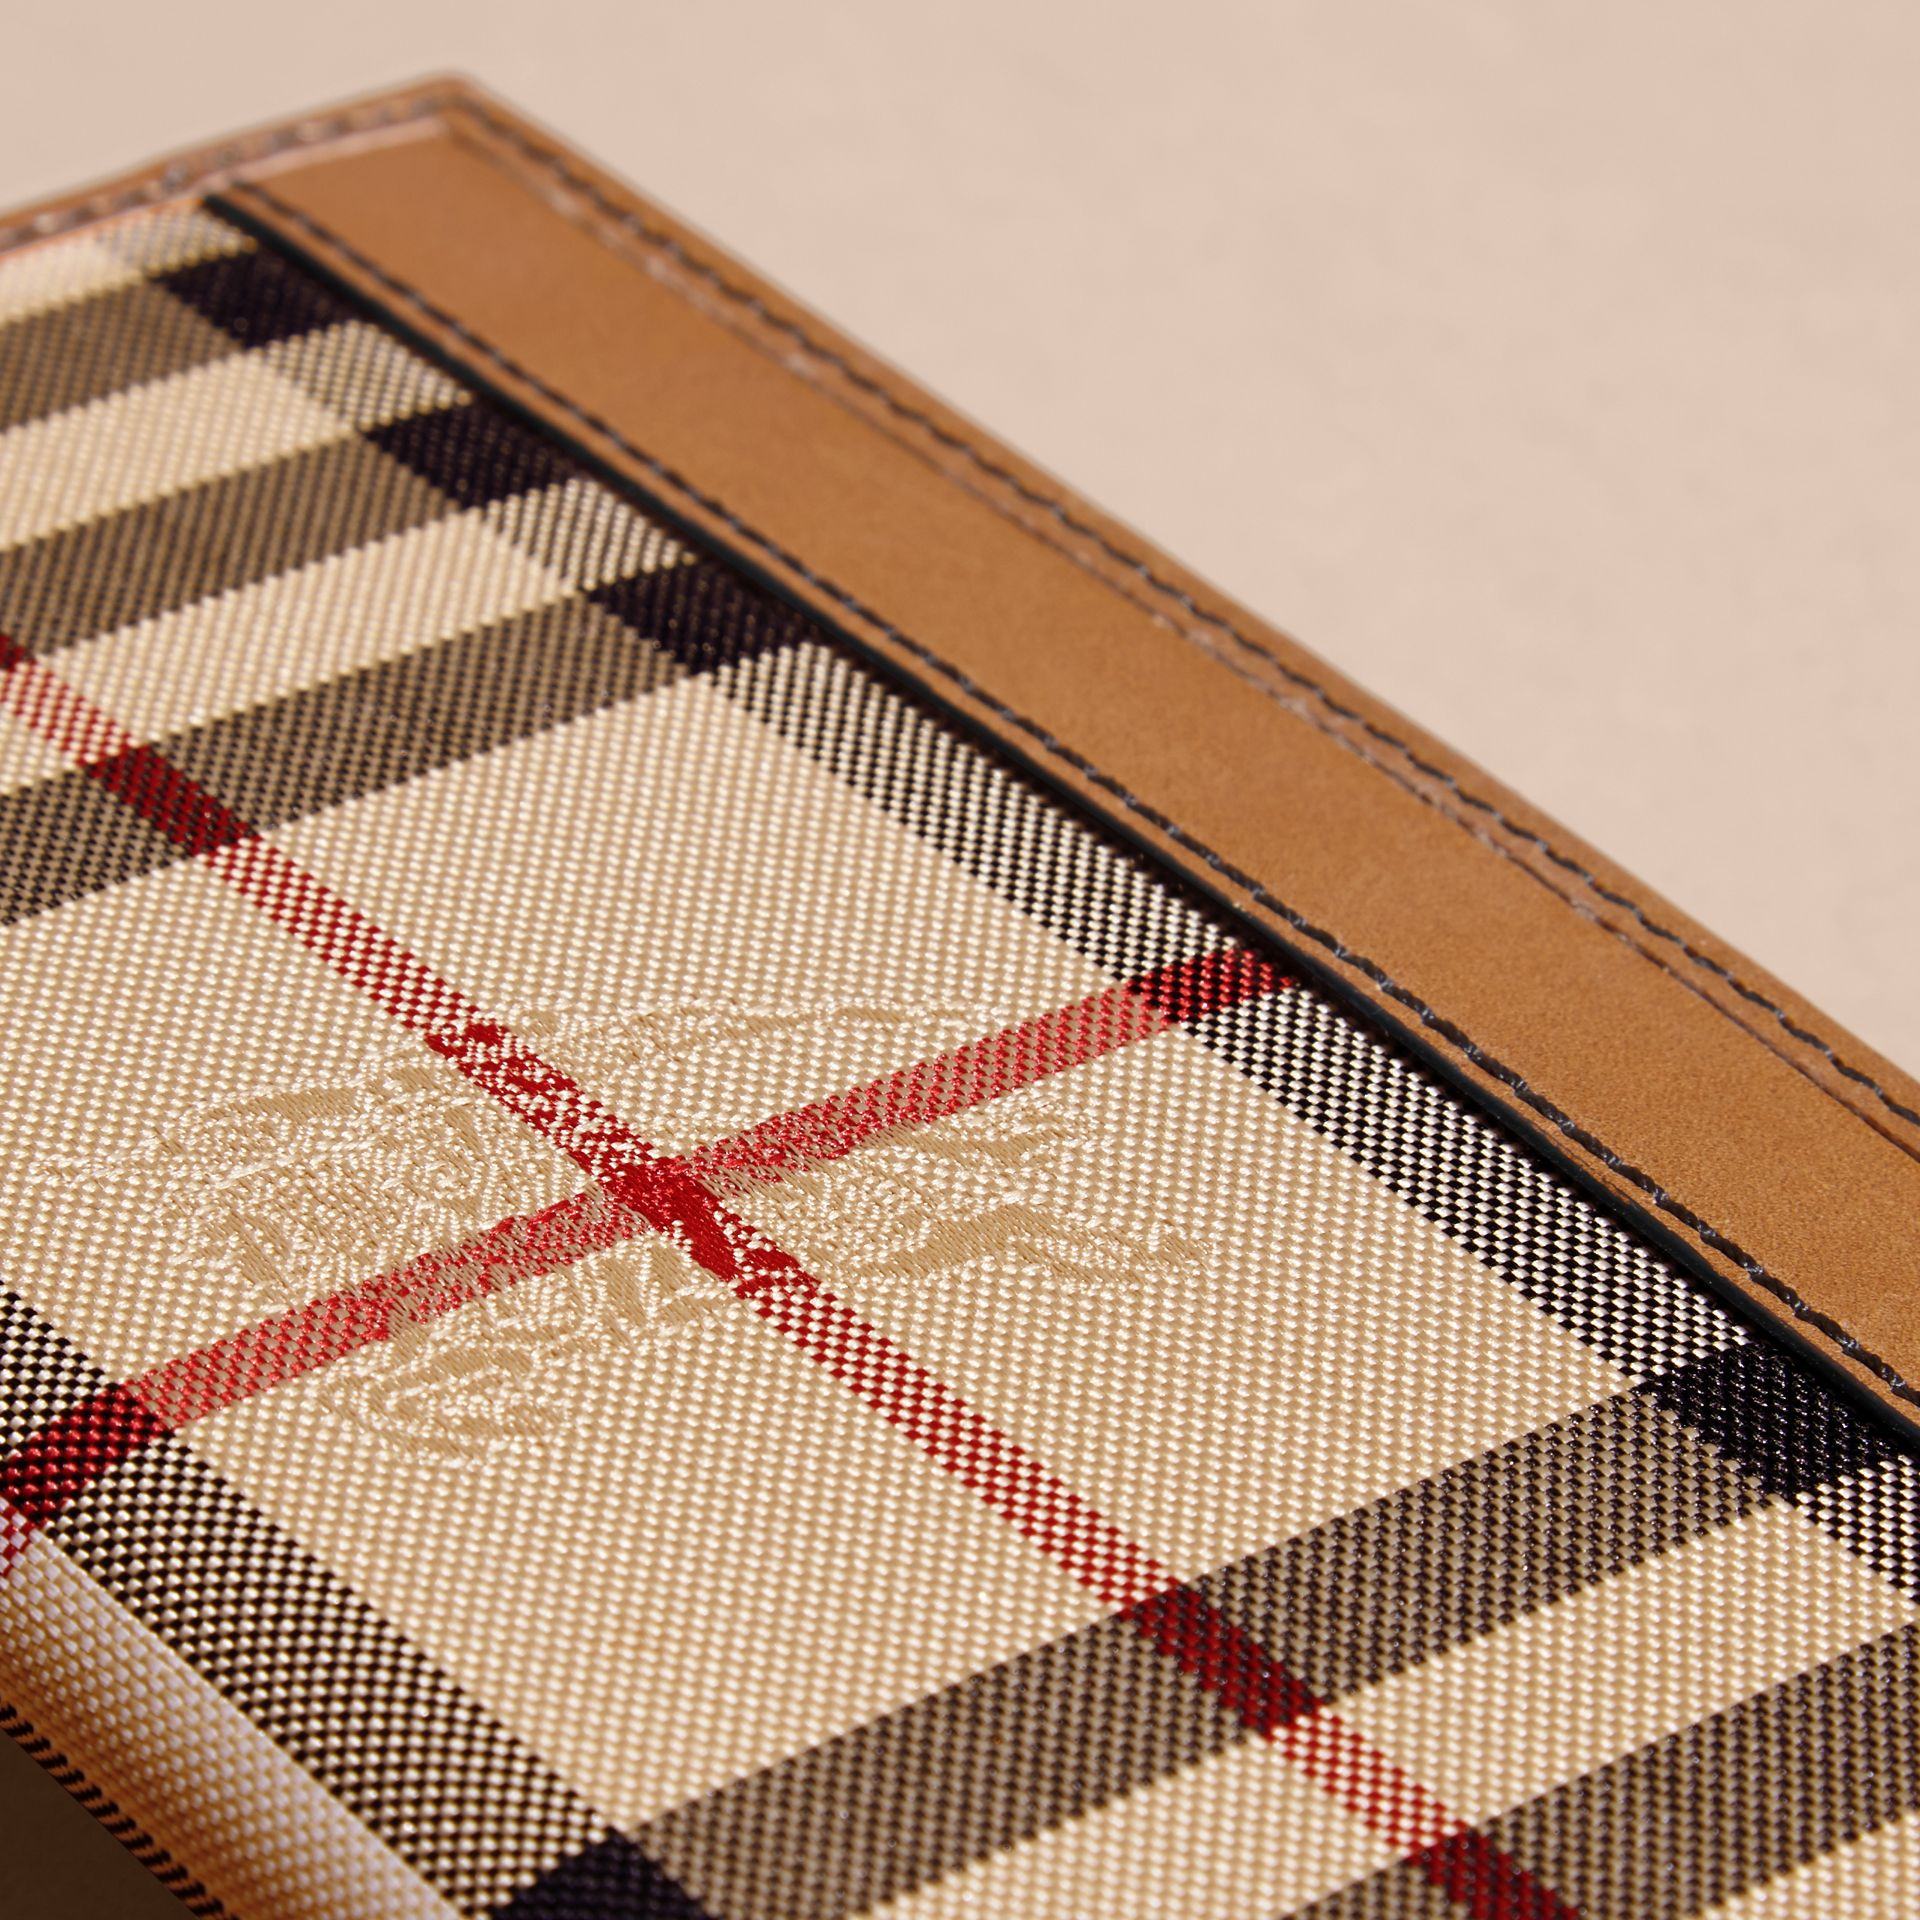 Small Horseferry Check Currency Wallet in Tan - Men | Burberry - gallery image 1